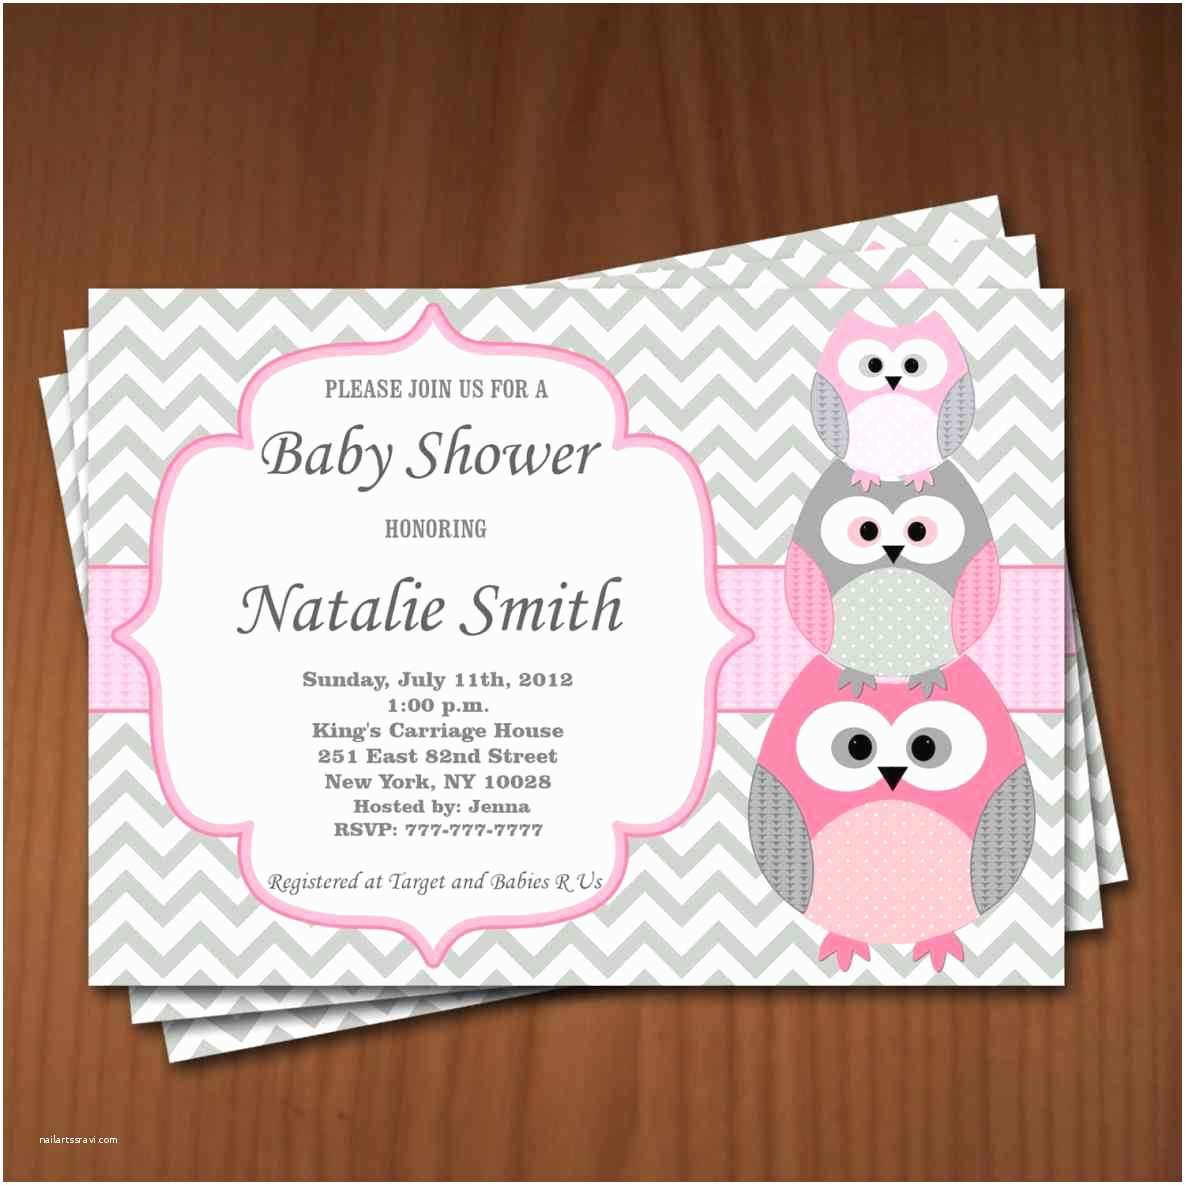 Cute Cheap Baby Shower Invitations Shower Invitations Blueklip Cards Ideas with Cute